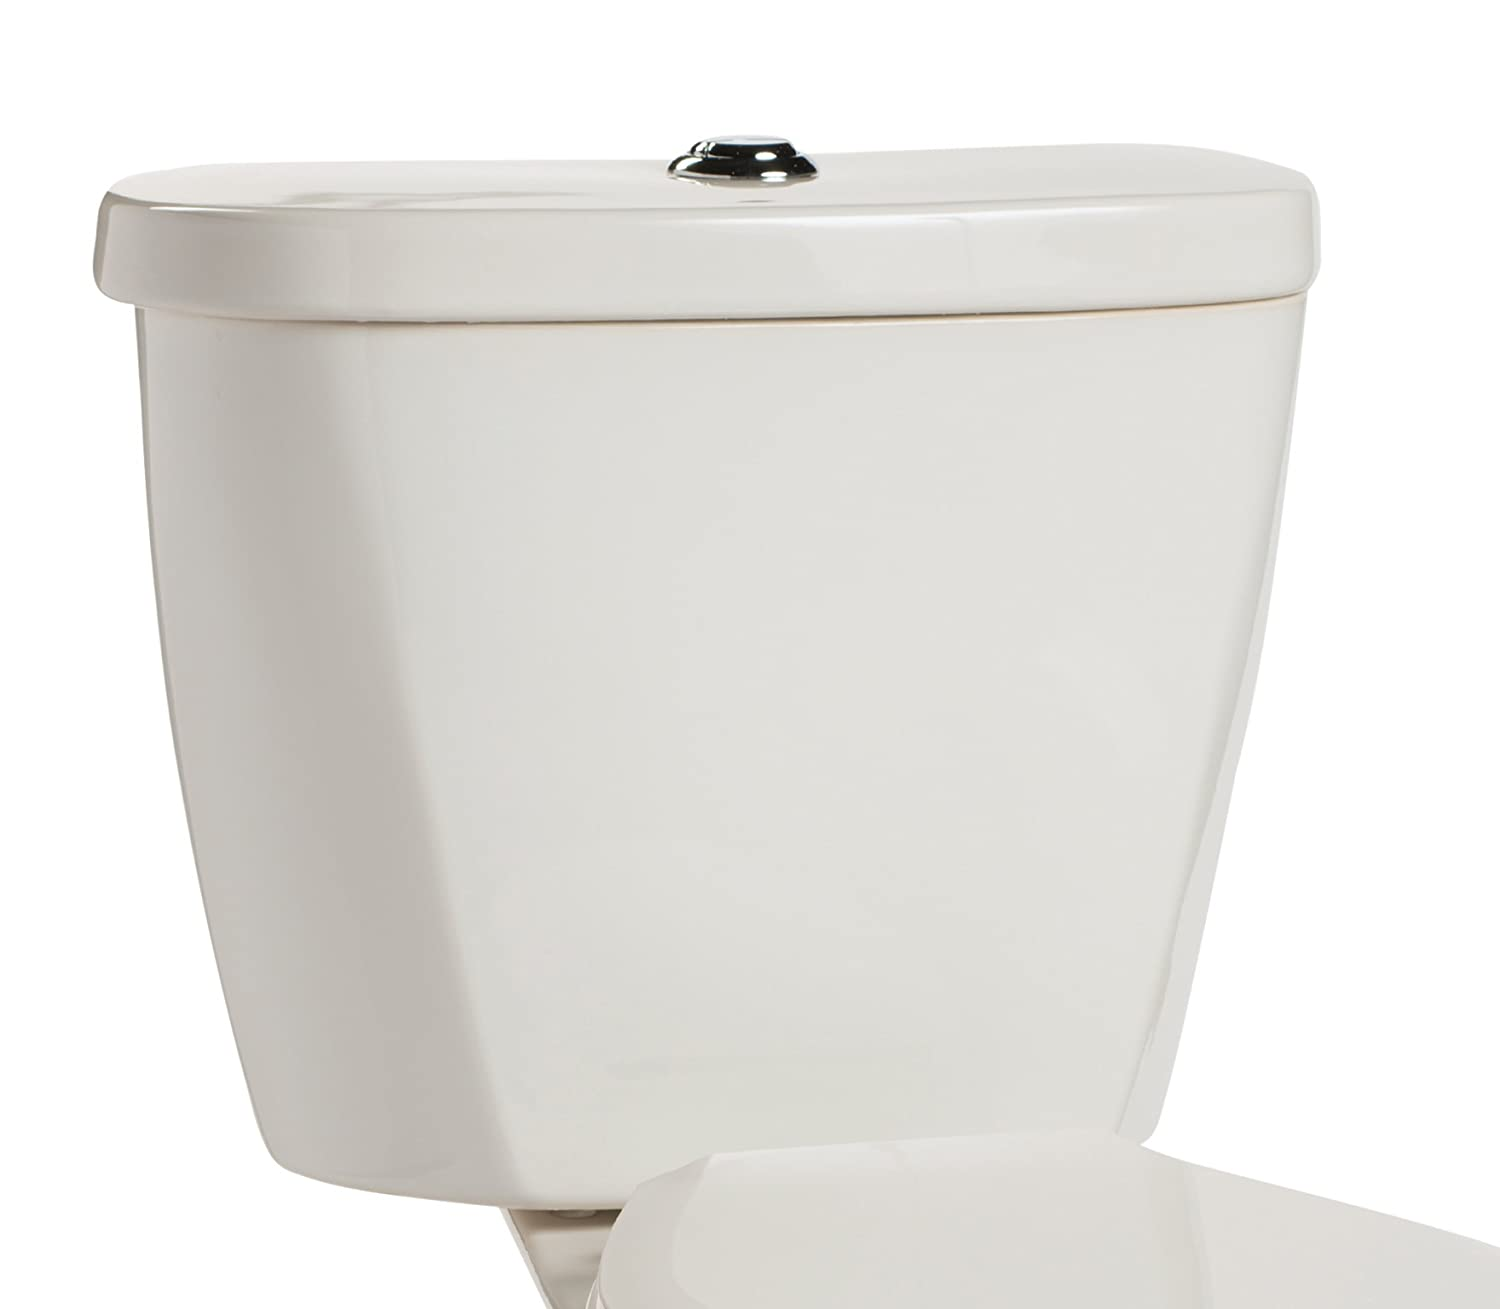 Mansfield Plumbing 3386 Summit Dual (Toilet Tank ONLY), White